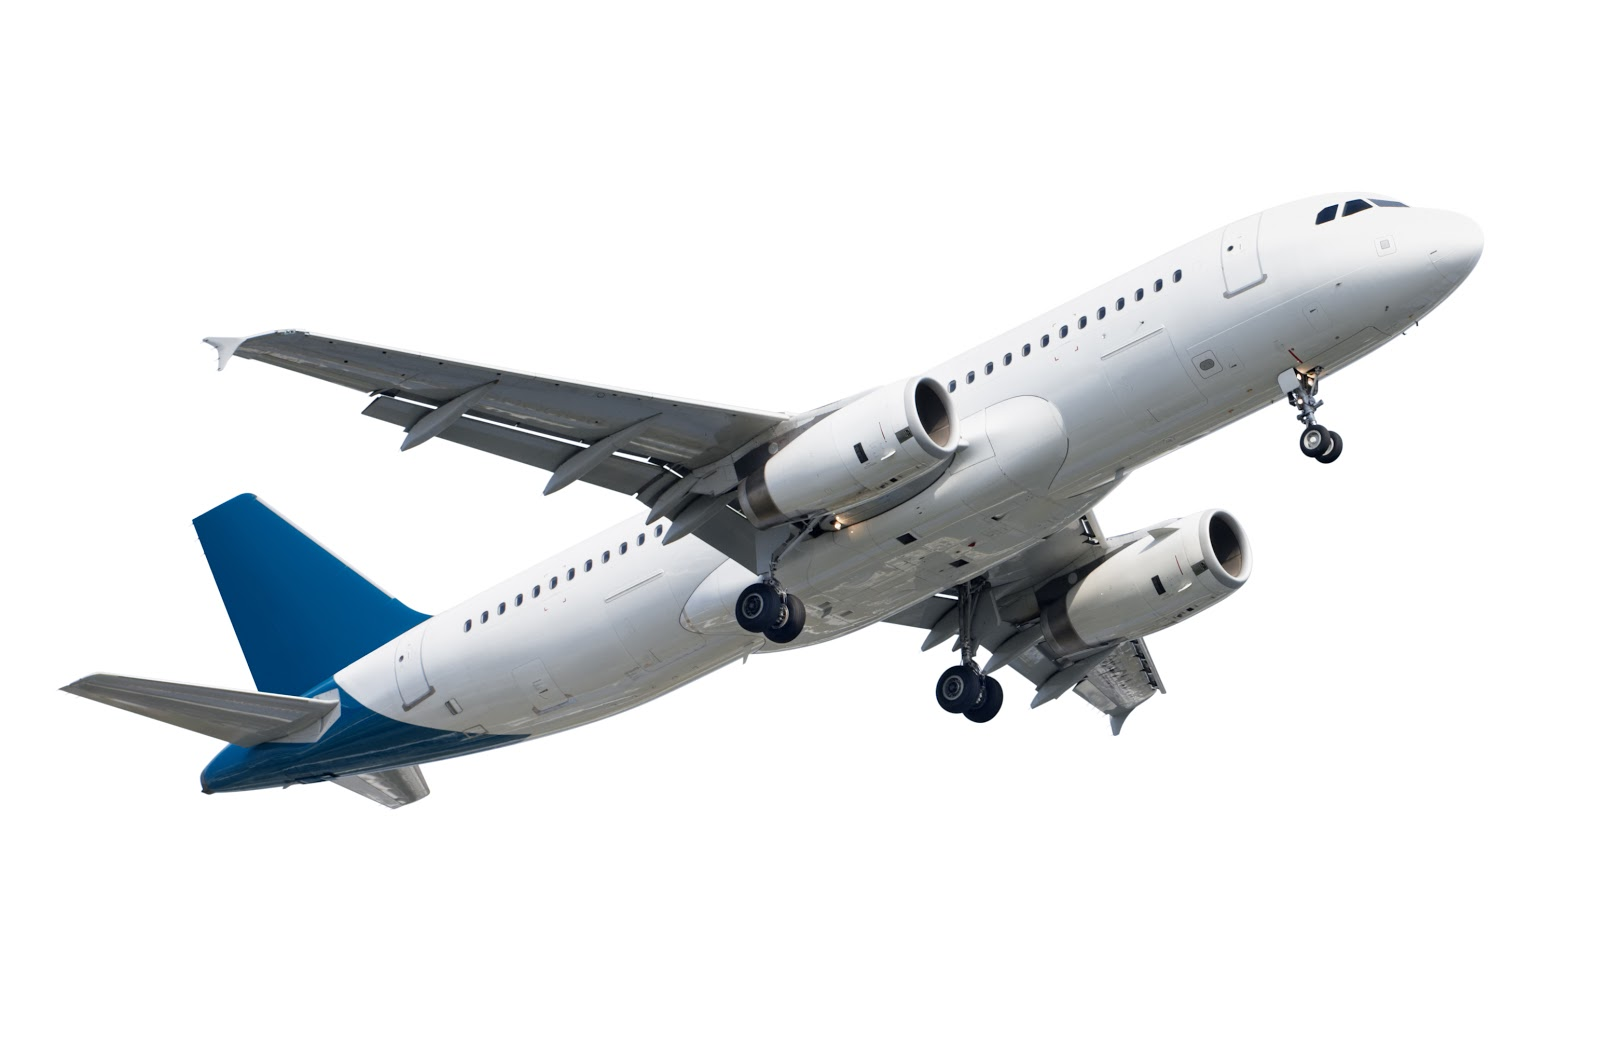 Airplane Png Image #27958 - Plane, Transparent background PNG HD thumbnail